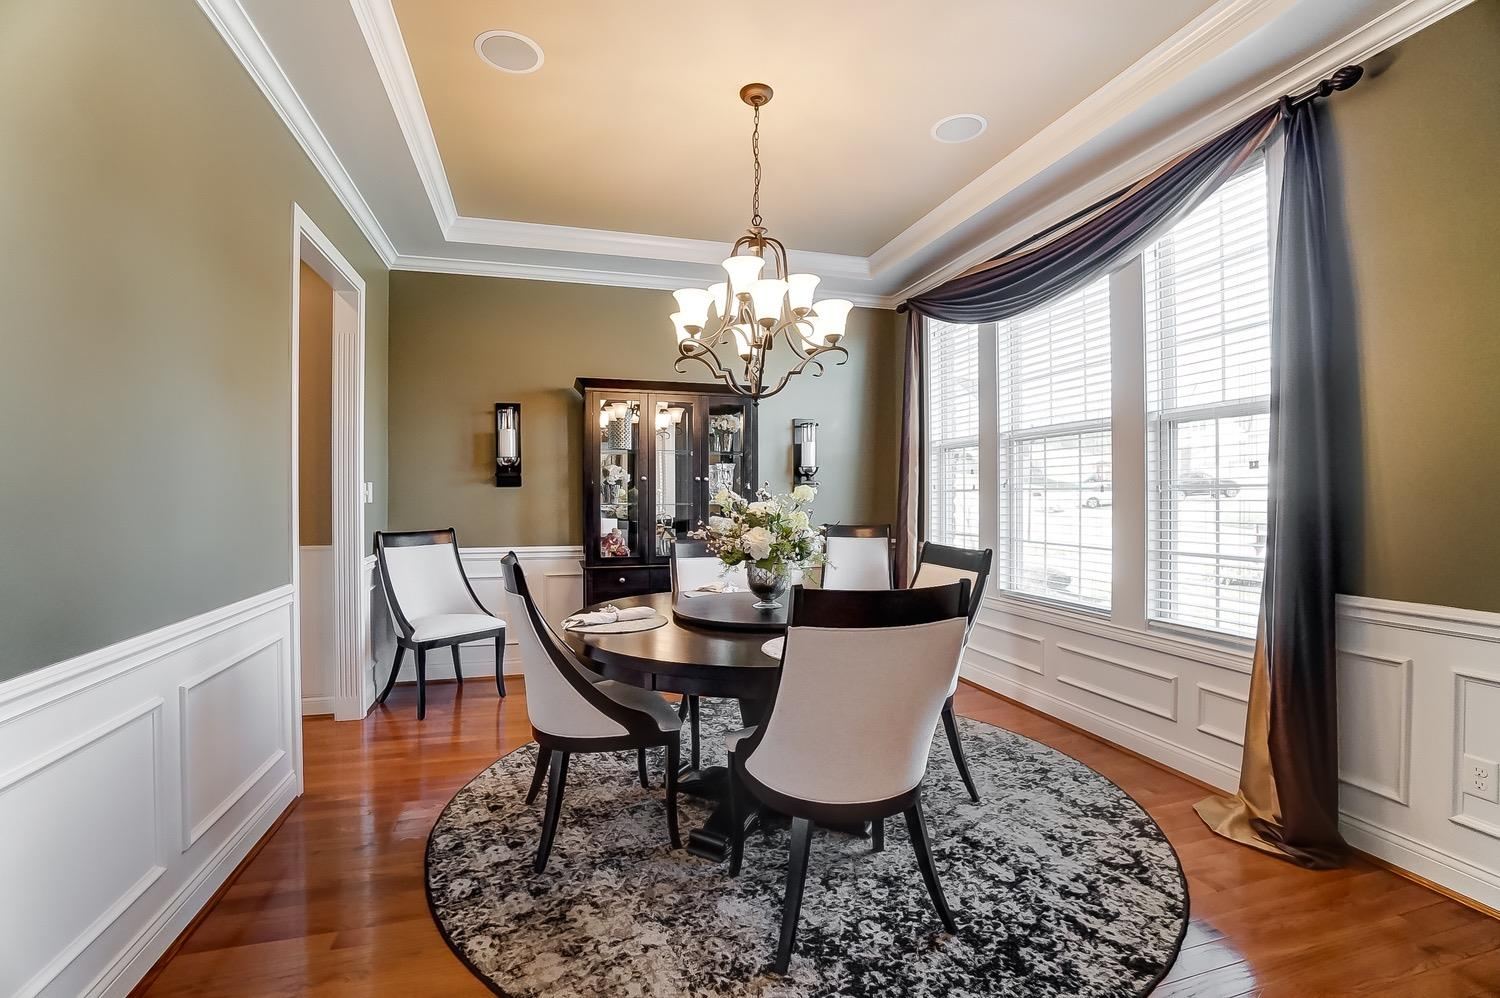 Dining room features tray ceiling, chandelier, and ceiling speakers.